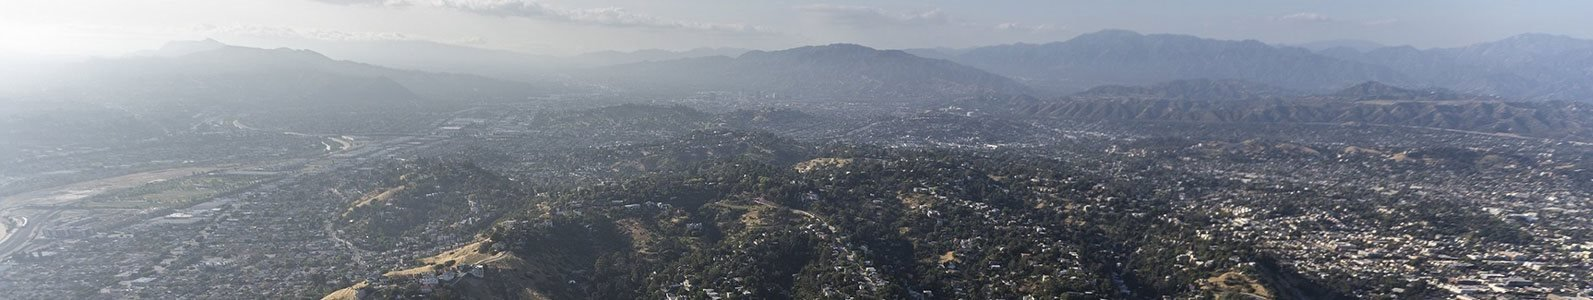 Arial View Of City The Perch Northeast LA